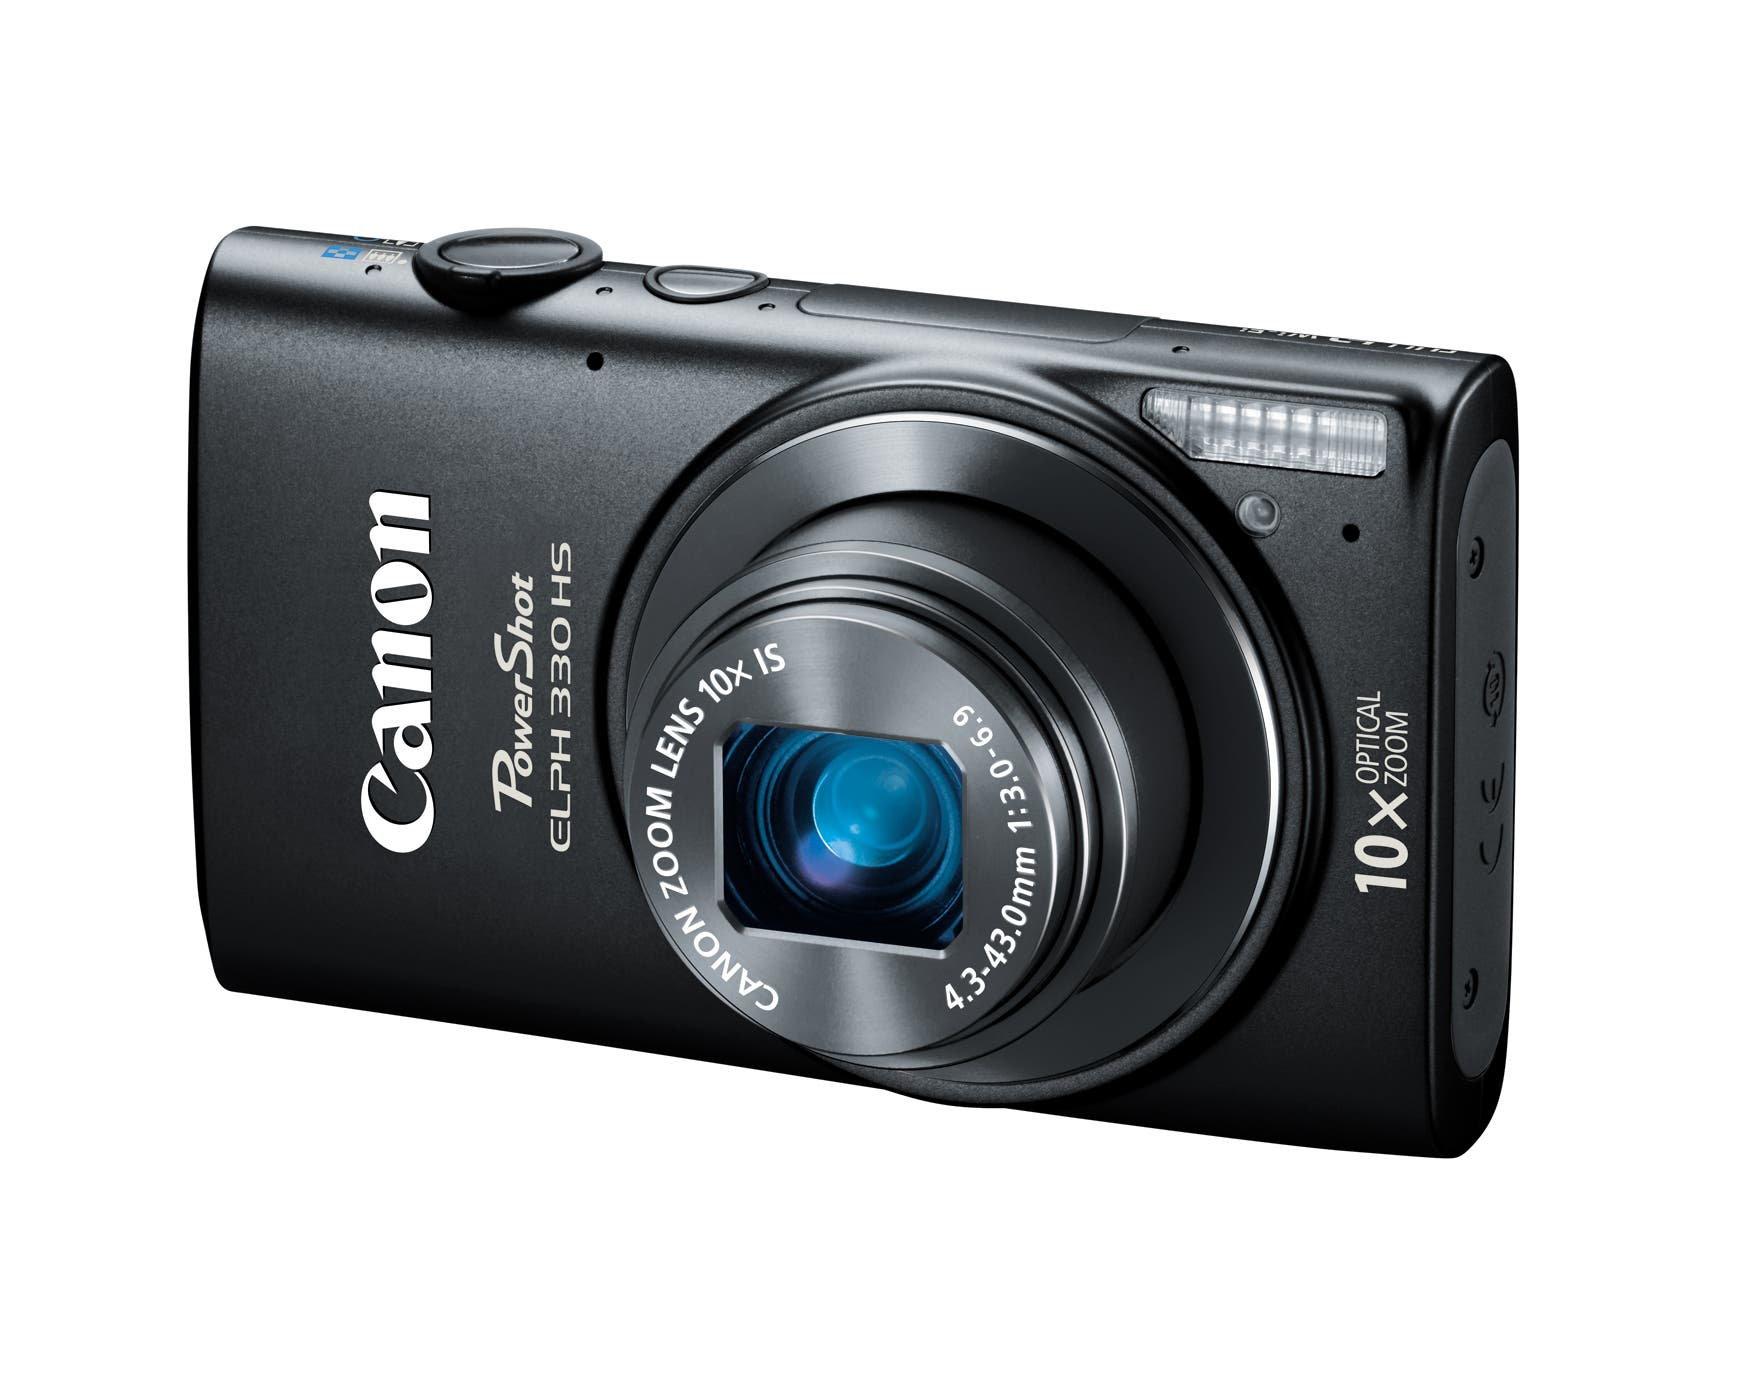 Canon Introduces Three New Point-and-Shoot Cameras